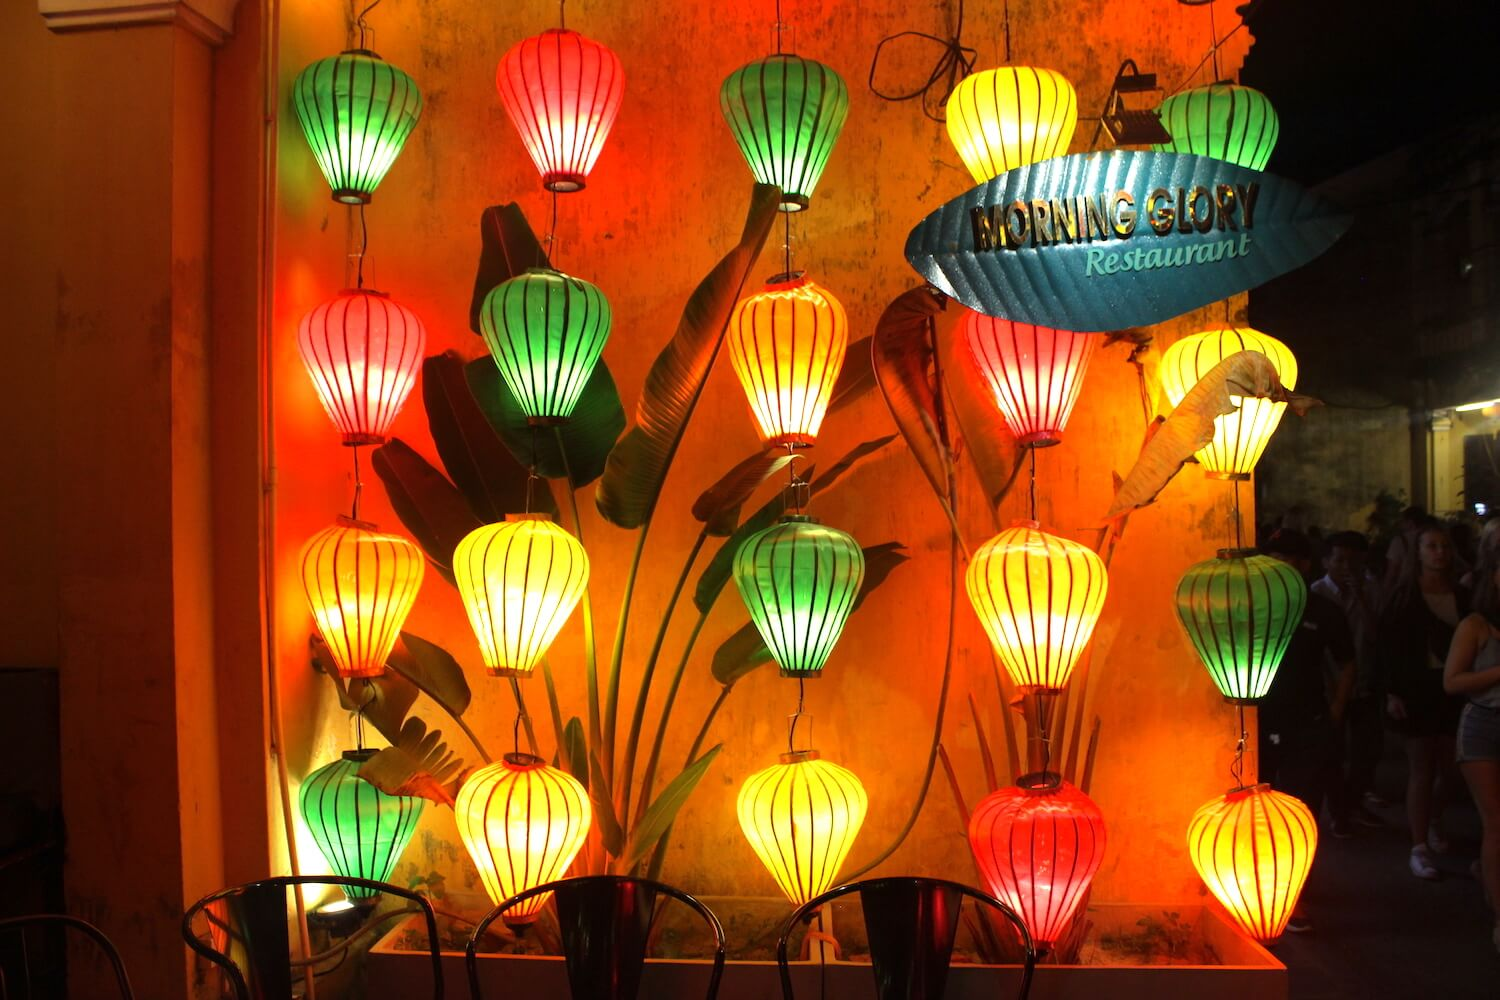 hoi an night lights morning glory restaurant lanterns